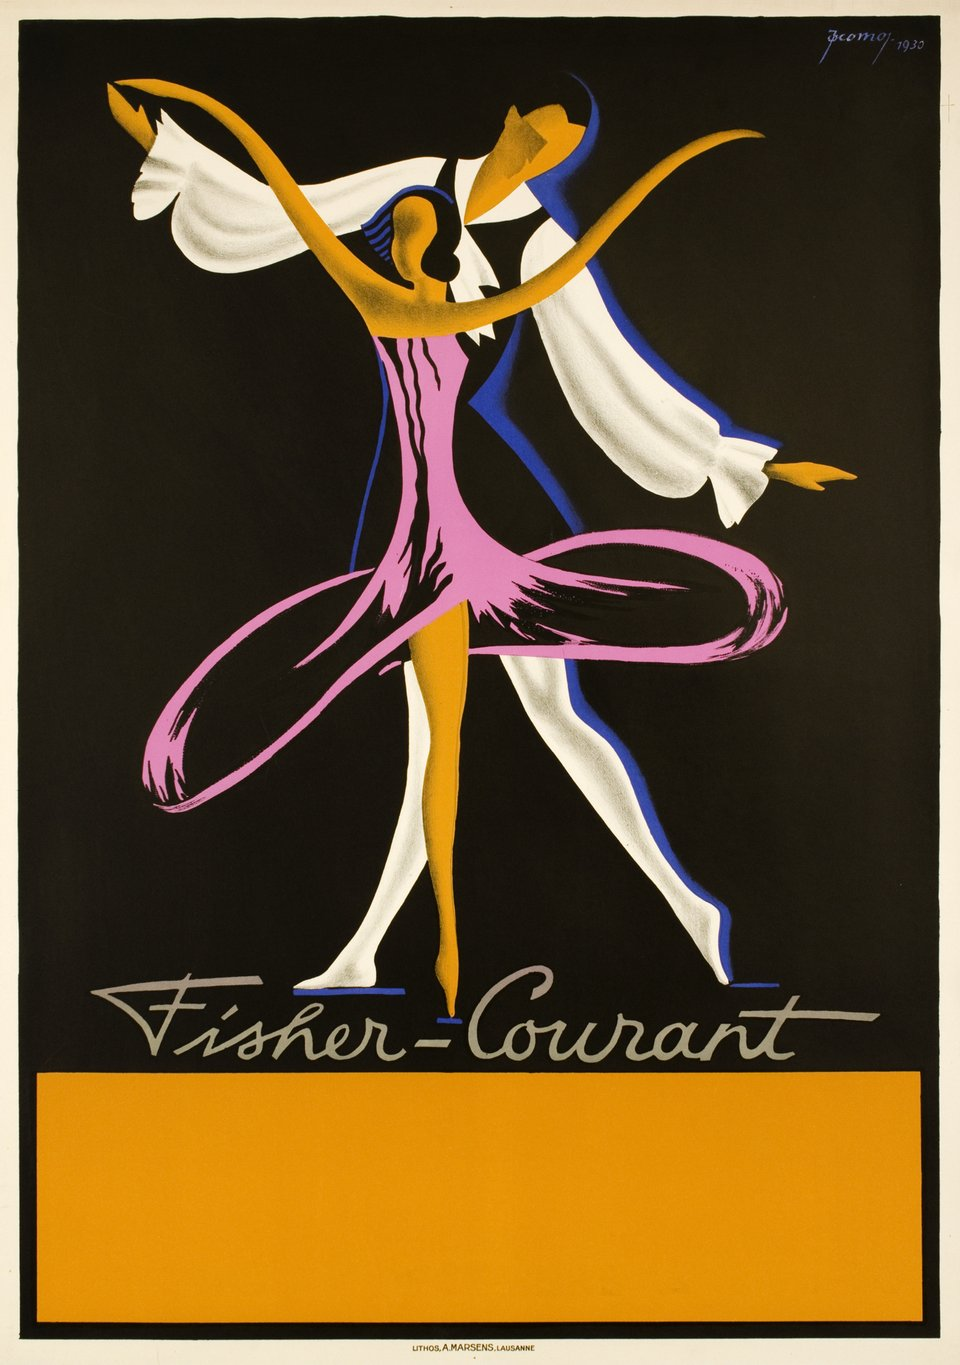 Fisher-Courant – Affiche ancienne – Jacomo MULLER – 1930